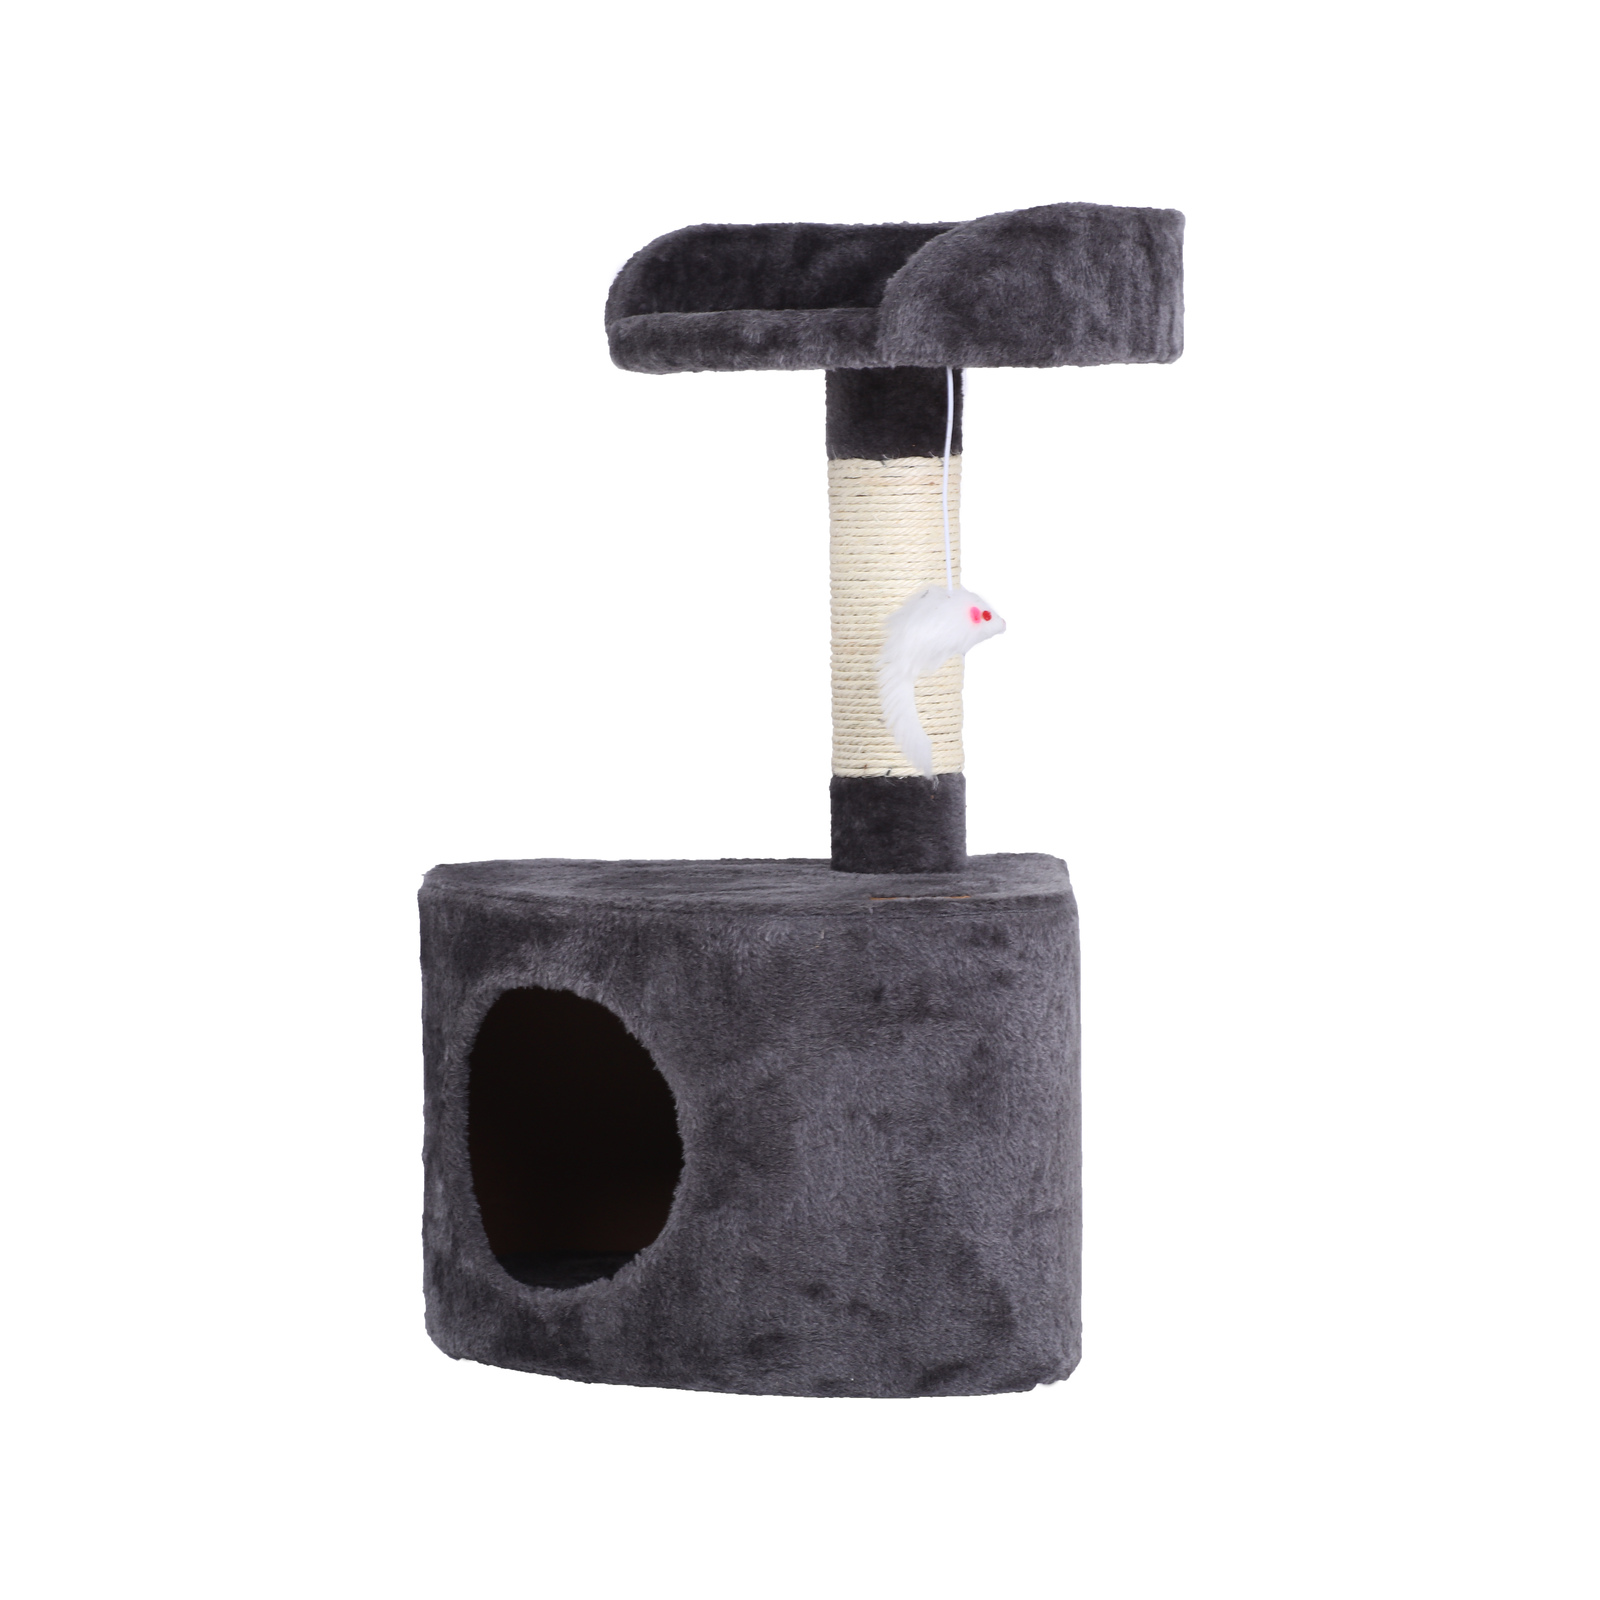 Charlie's Pet Cat Tree with Round House - Charcoal